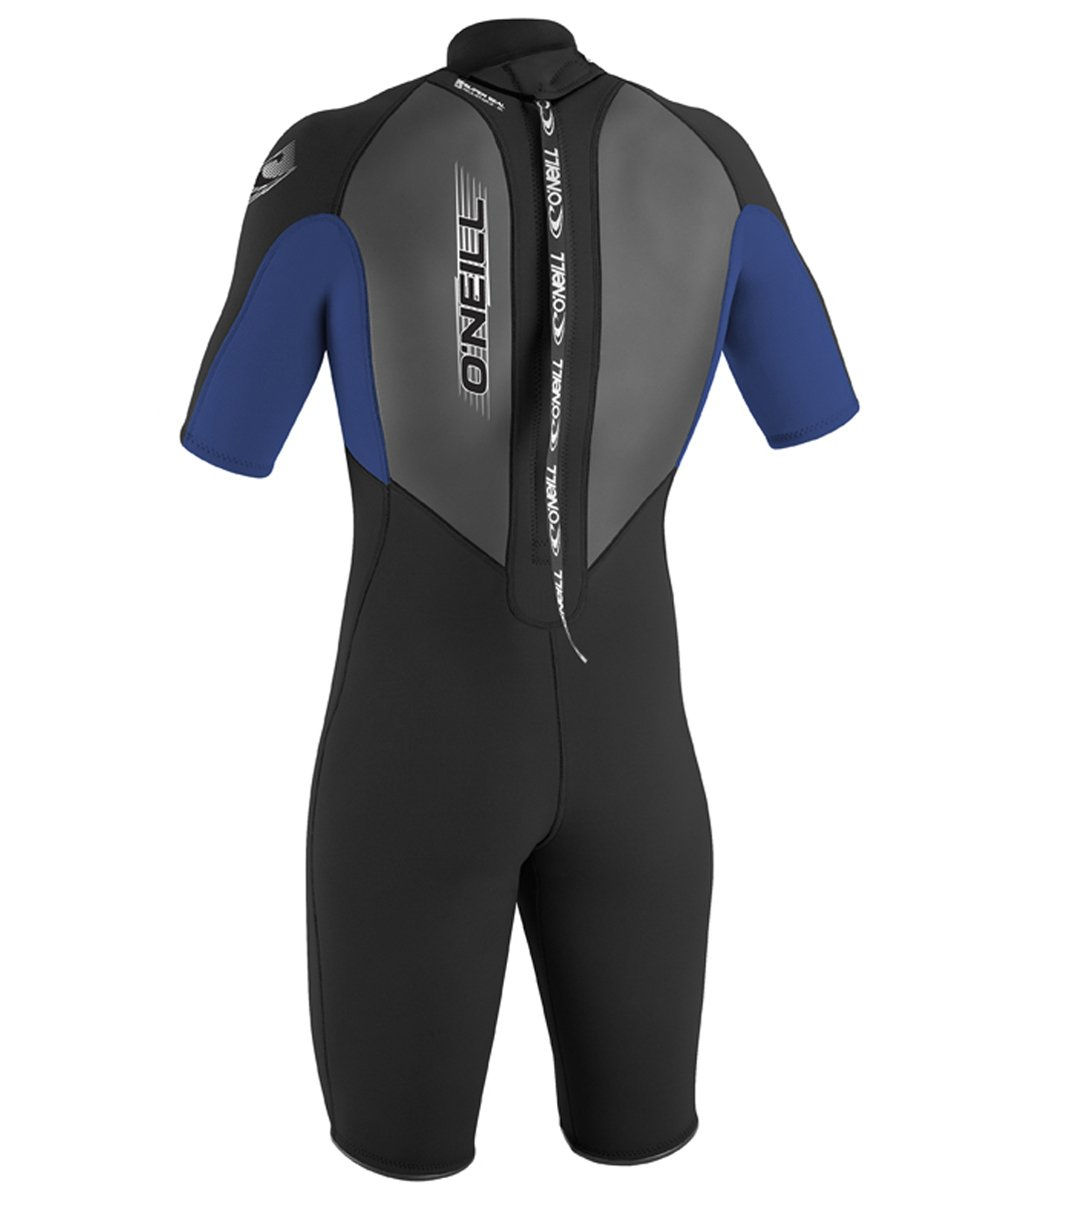 O'Neill Youth Reactor 2mm Back Zip Spring Wetsuit, Black/Pacific/Black, 4 by O'Neill Wetsuits (Image #2)